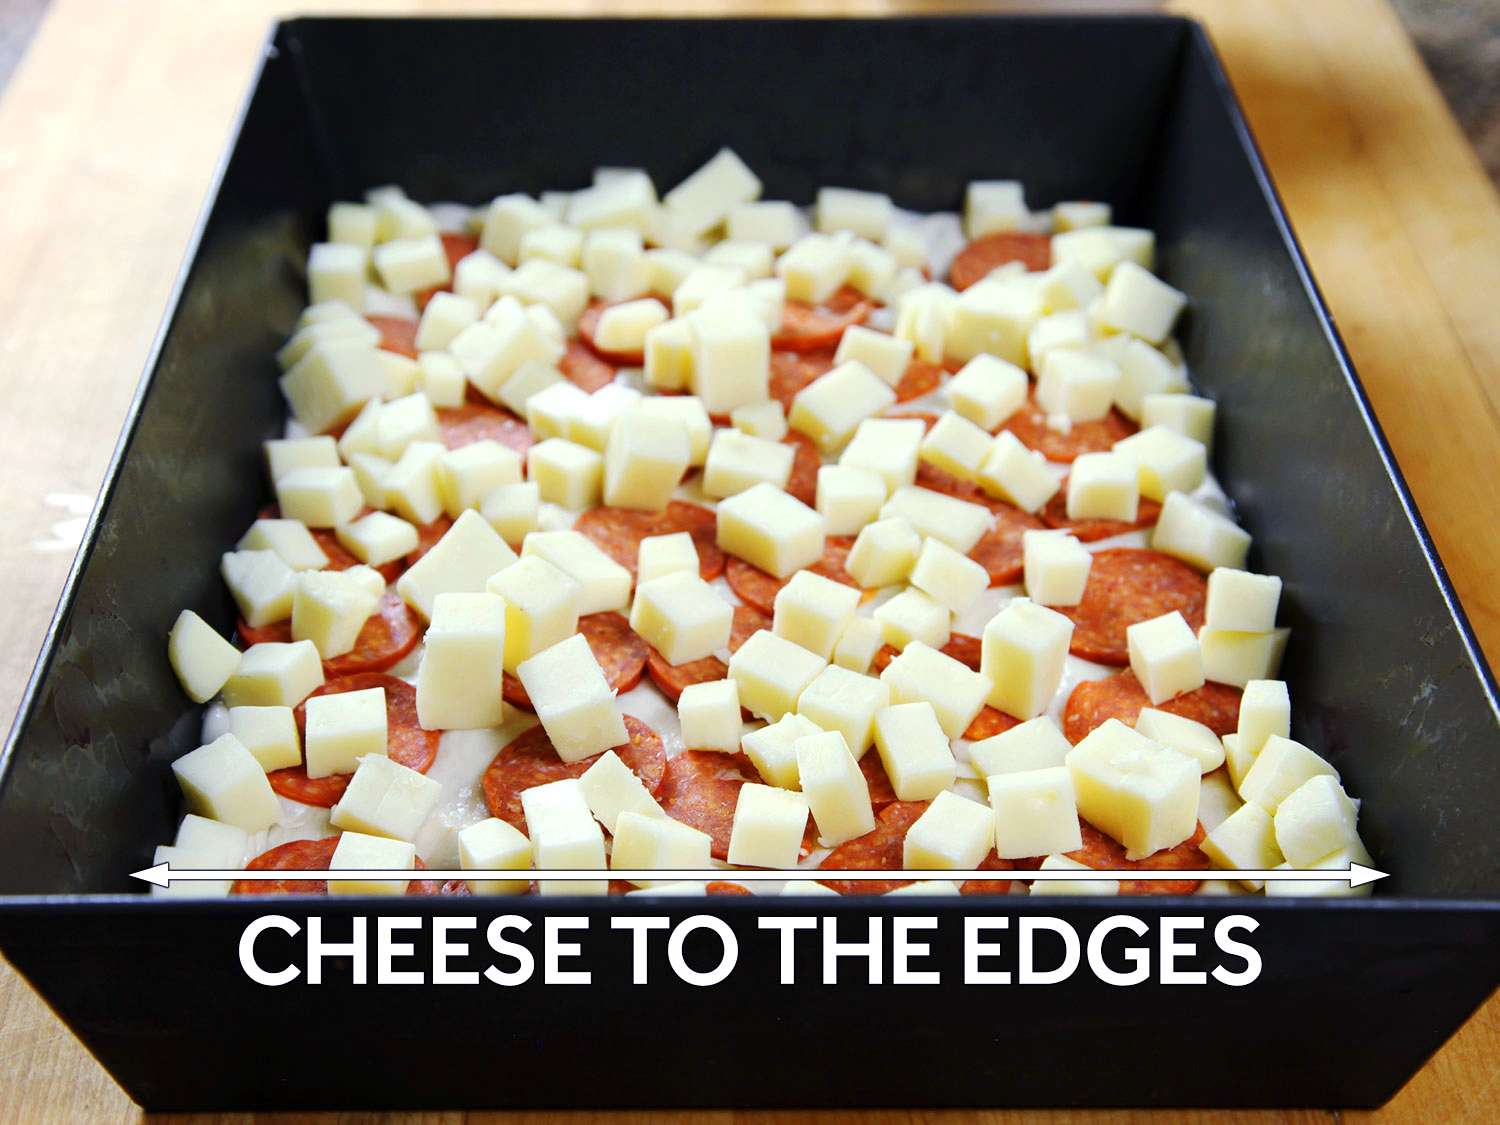 Cubed cheese spread to the edge of a Detroit-style pizza